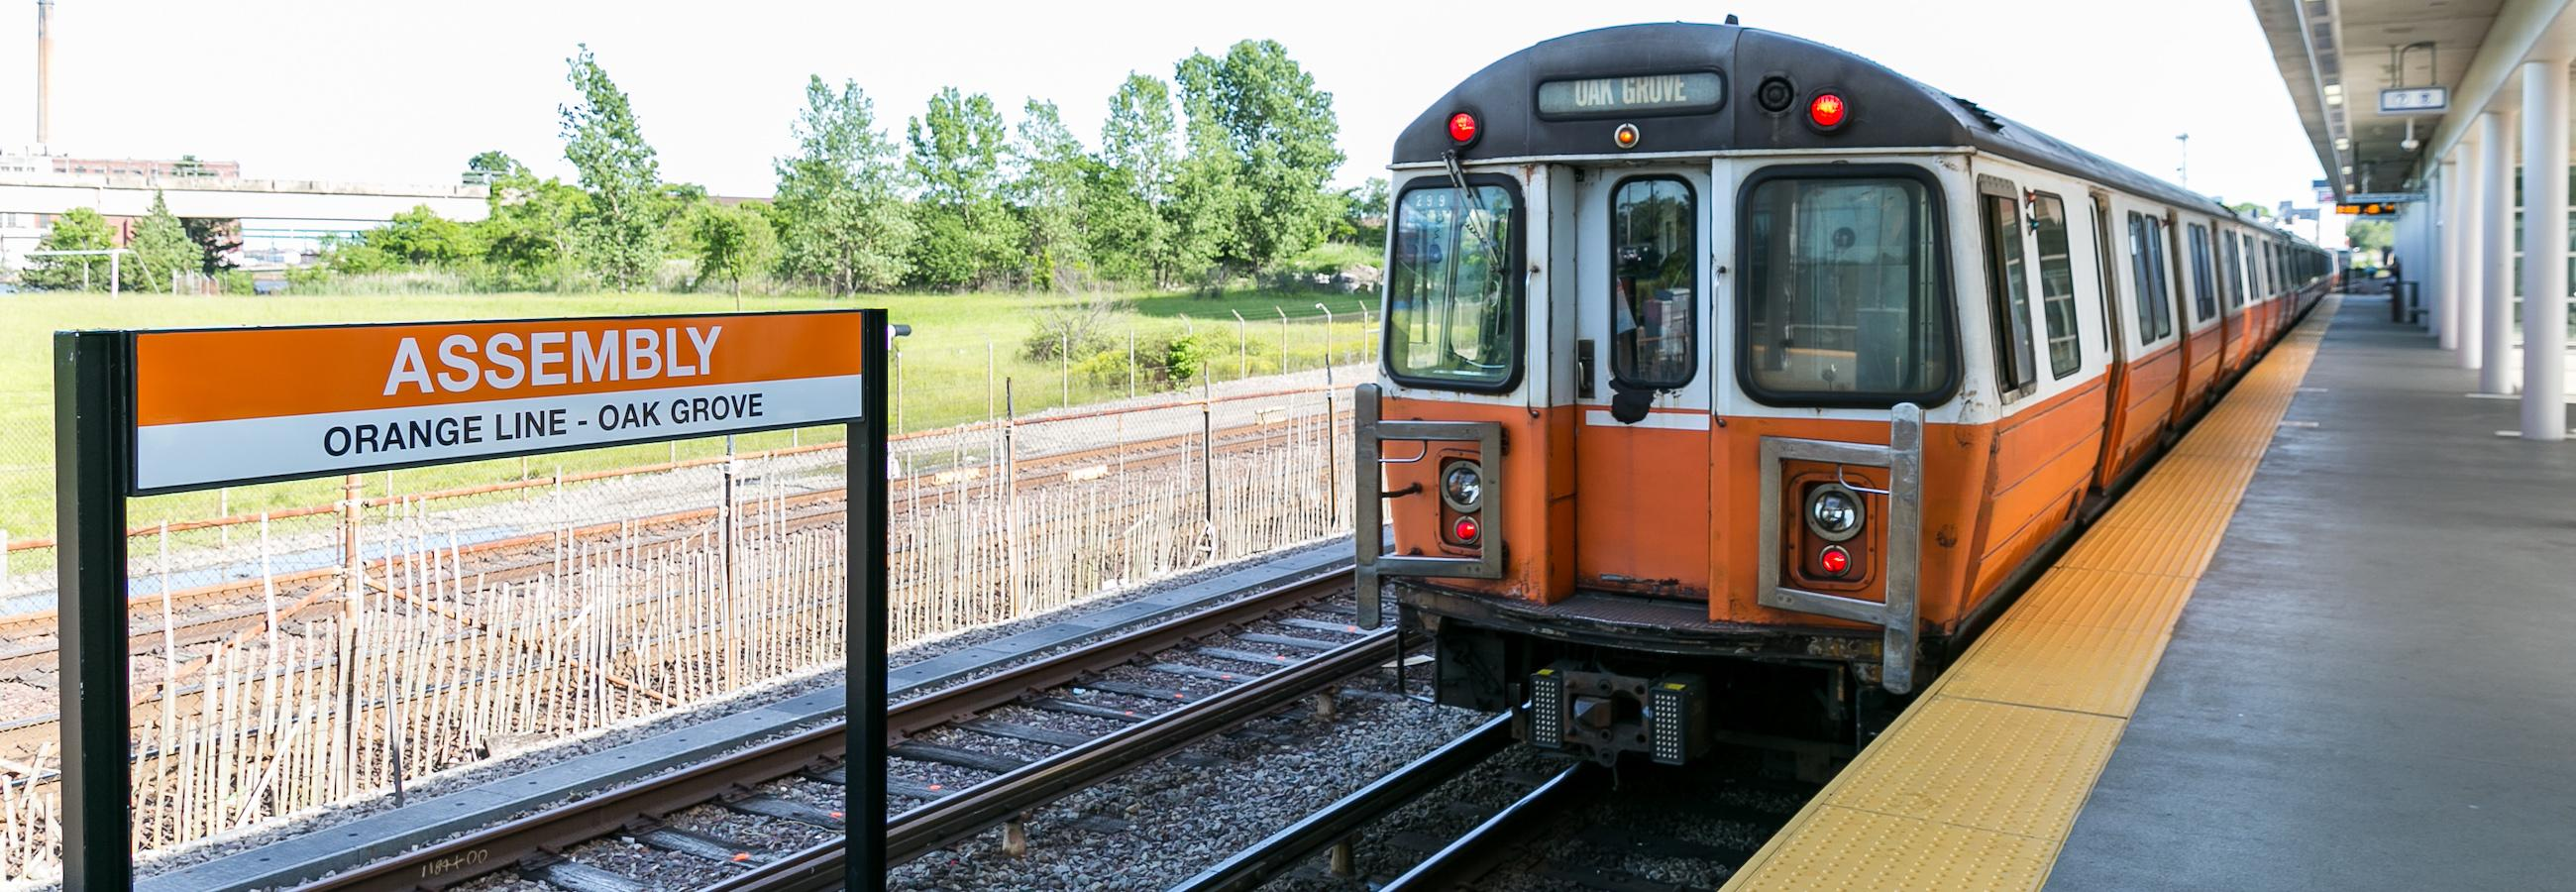 Orange Line Train Pulling into Assembly Station with Sign